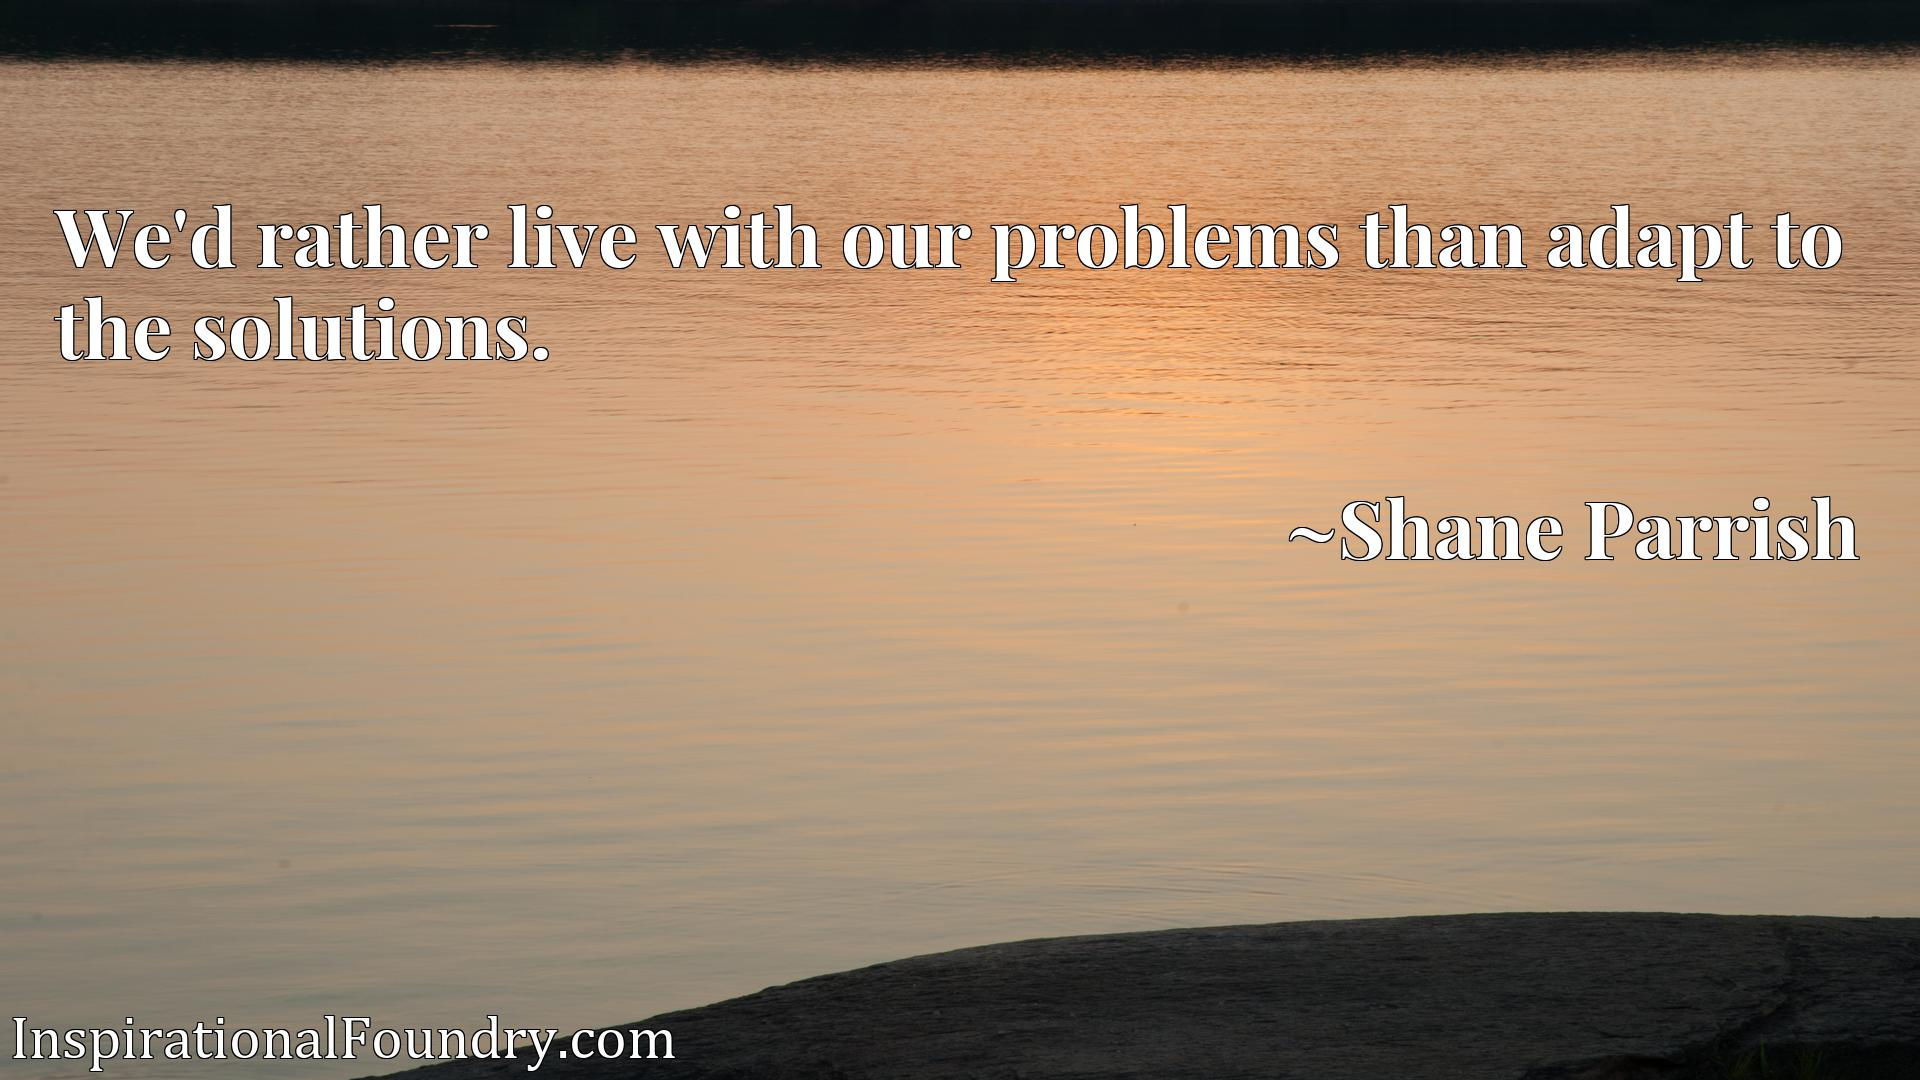 We'd rather live with our problems than adapt to the solutions.